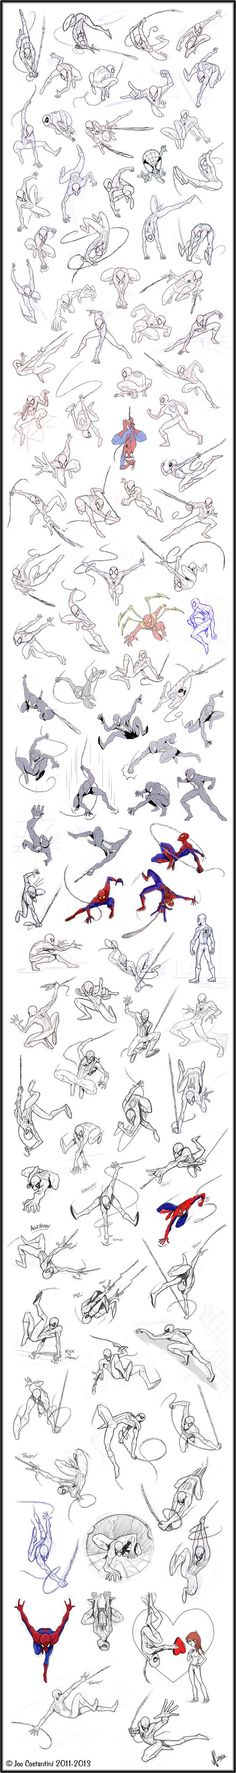 100 Spidey Poses by on deviantART. Please take the time to click this image and visit the artist's DeviantArt page to comment directly with the artist and see more of their works. - Visit to grab an amazing super hero shirt now on sale! Drawing Reference Poses, Animation Reference, Drawing Poses, Drawing Sketches, Anatomy Reference, Drawings, Sketching, Poses Dynamiques, Art Poses